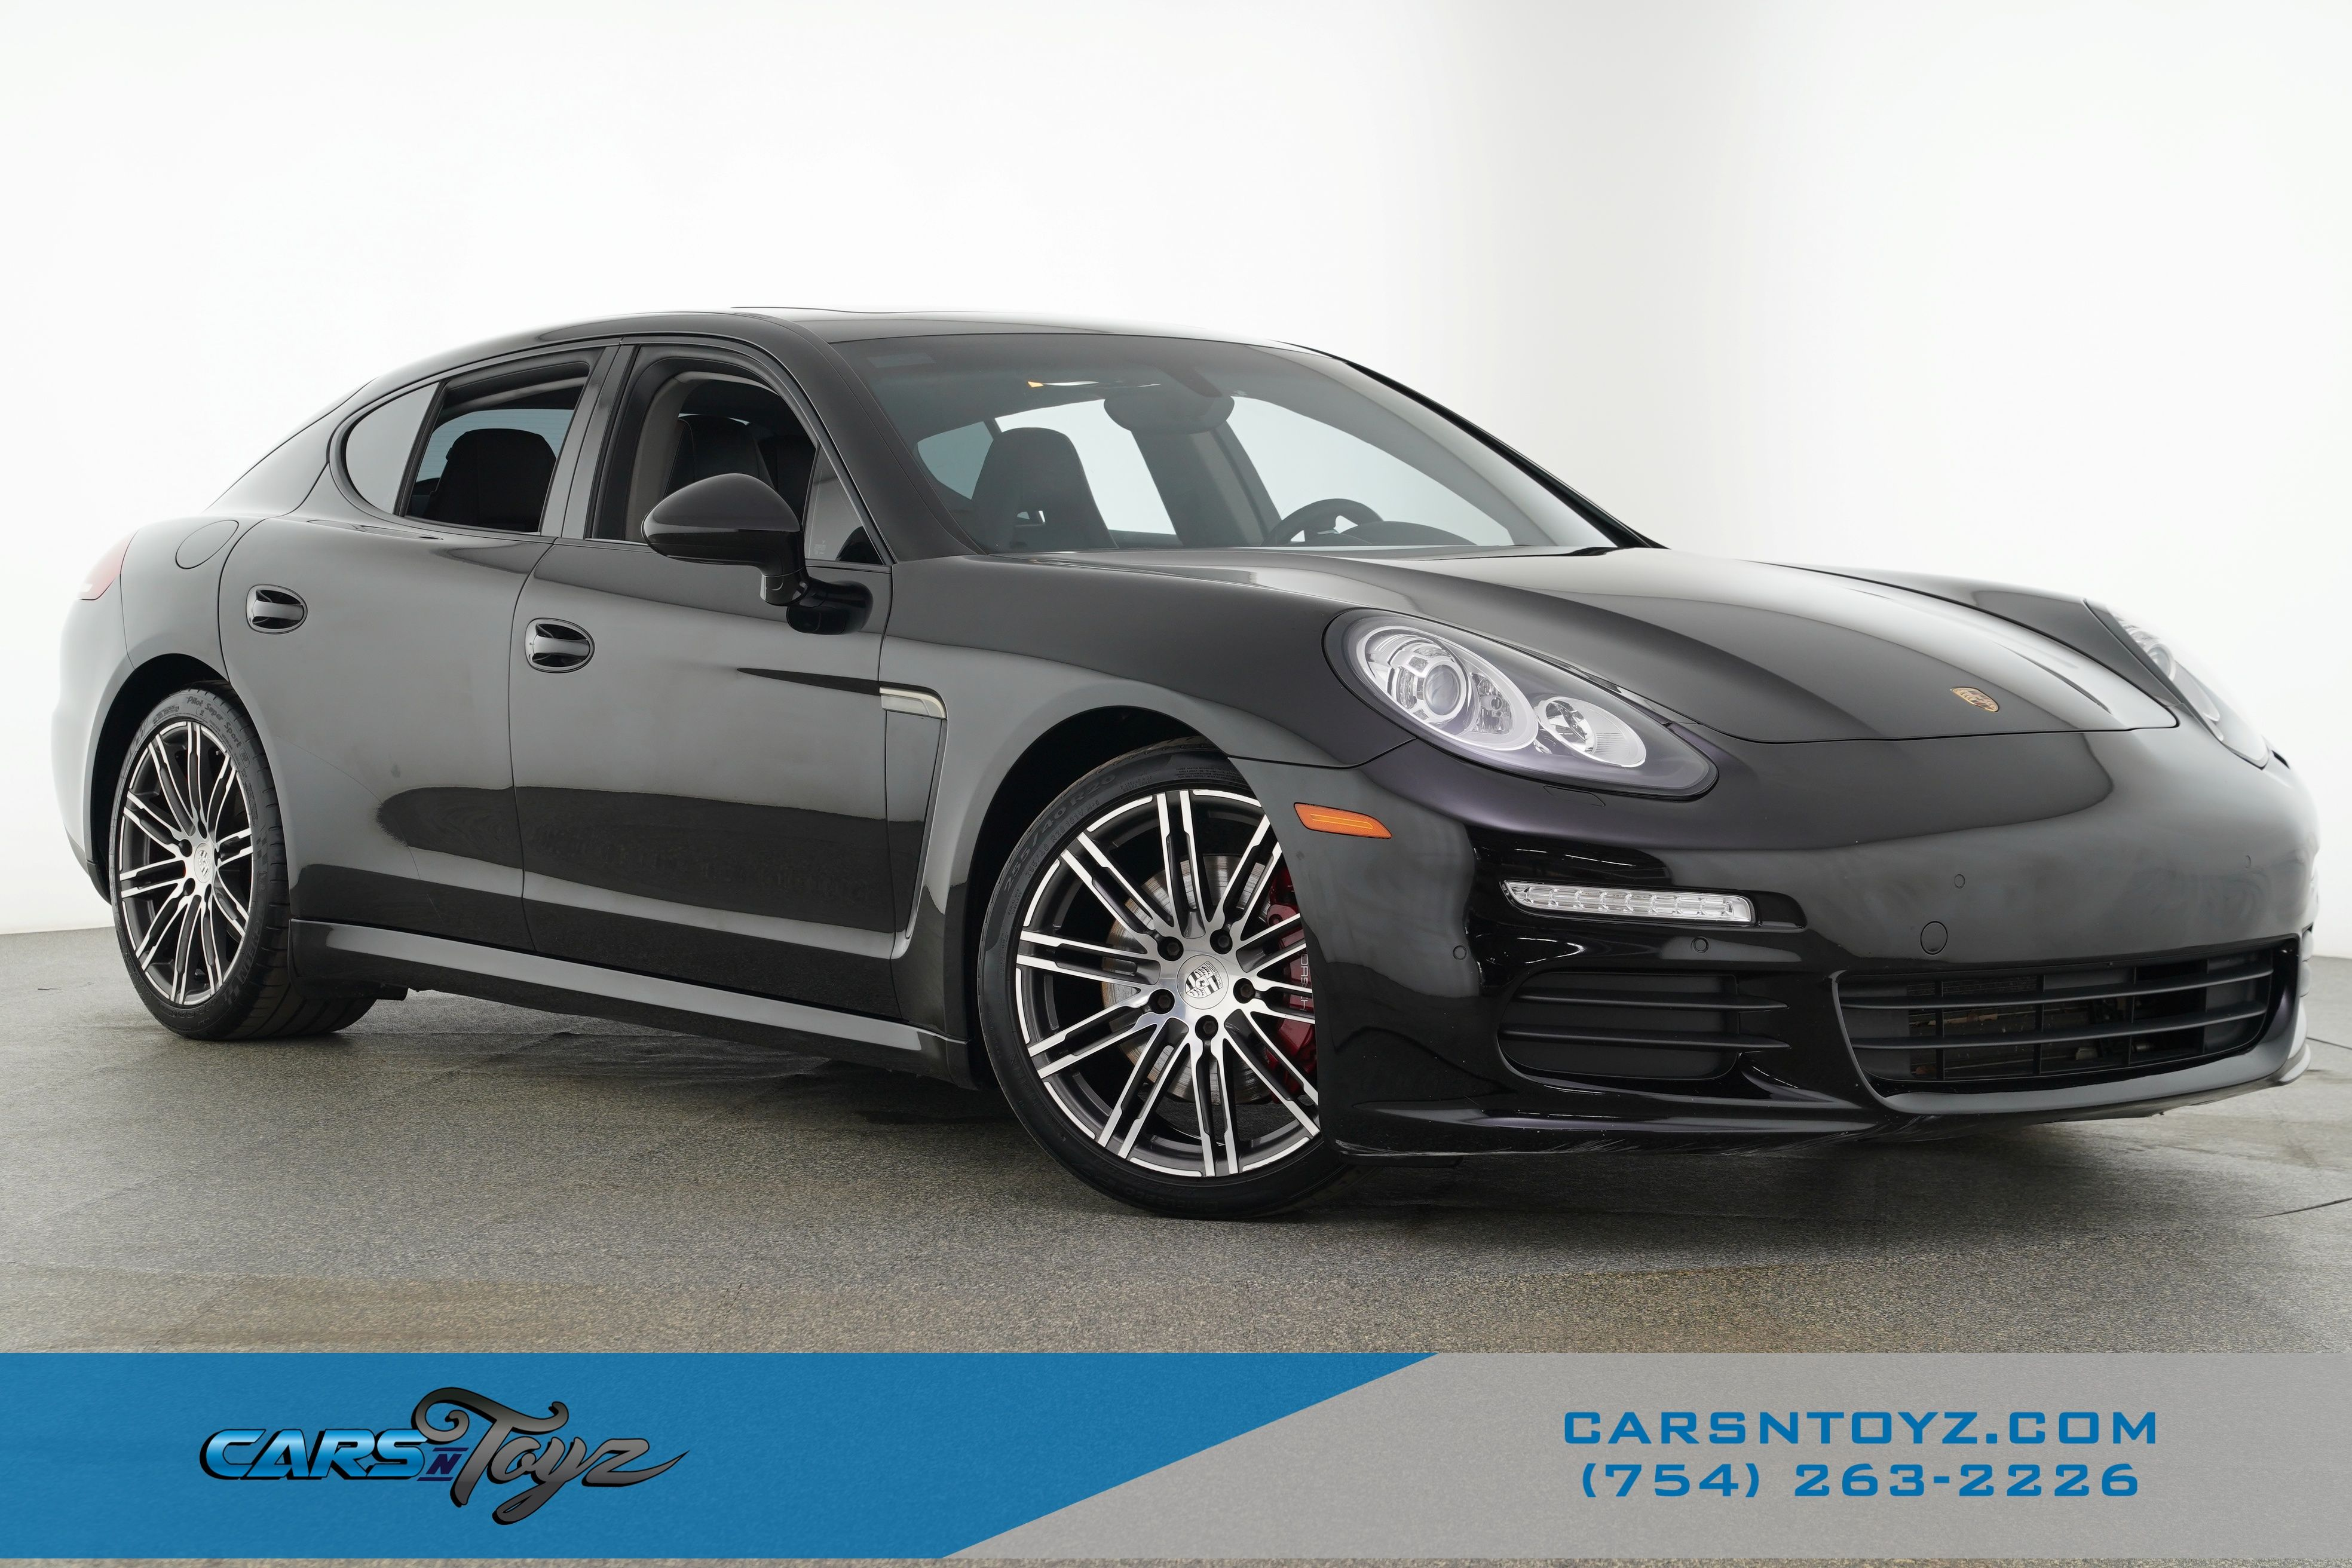 2015 Porsche Panamera 2 Rear Wheel Drive Sedan 4 Dr.